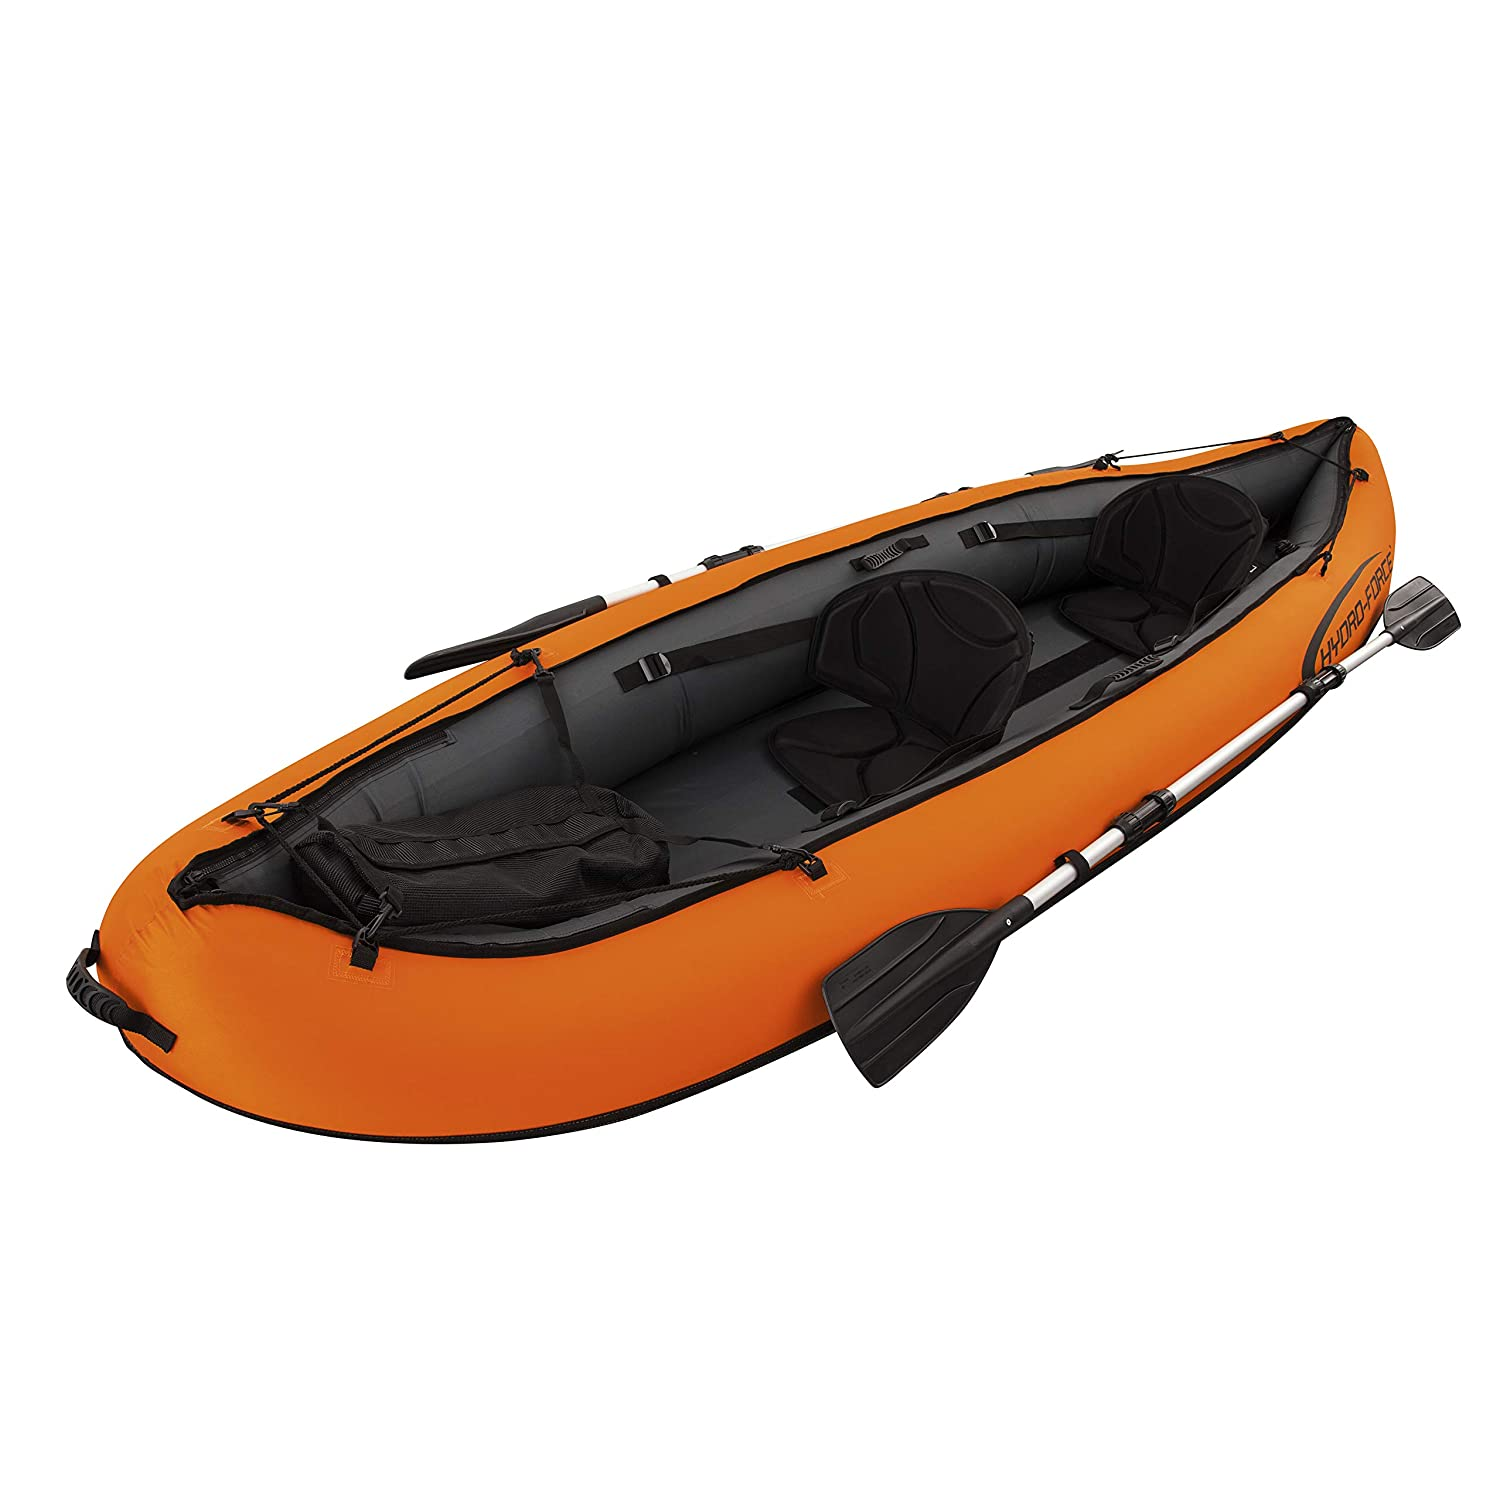 Amazon.com: Bestway Hydro-Force Ventura hinchable 2 Man ...